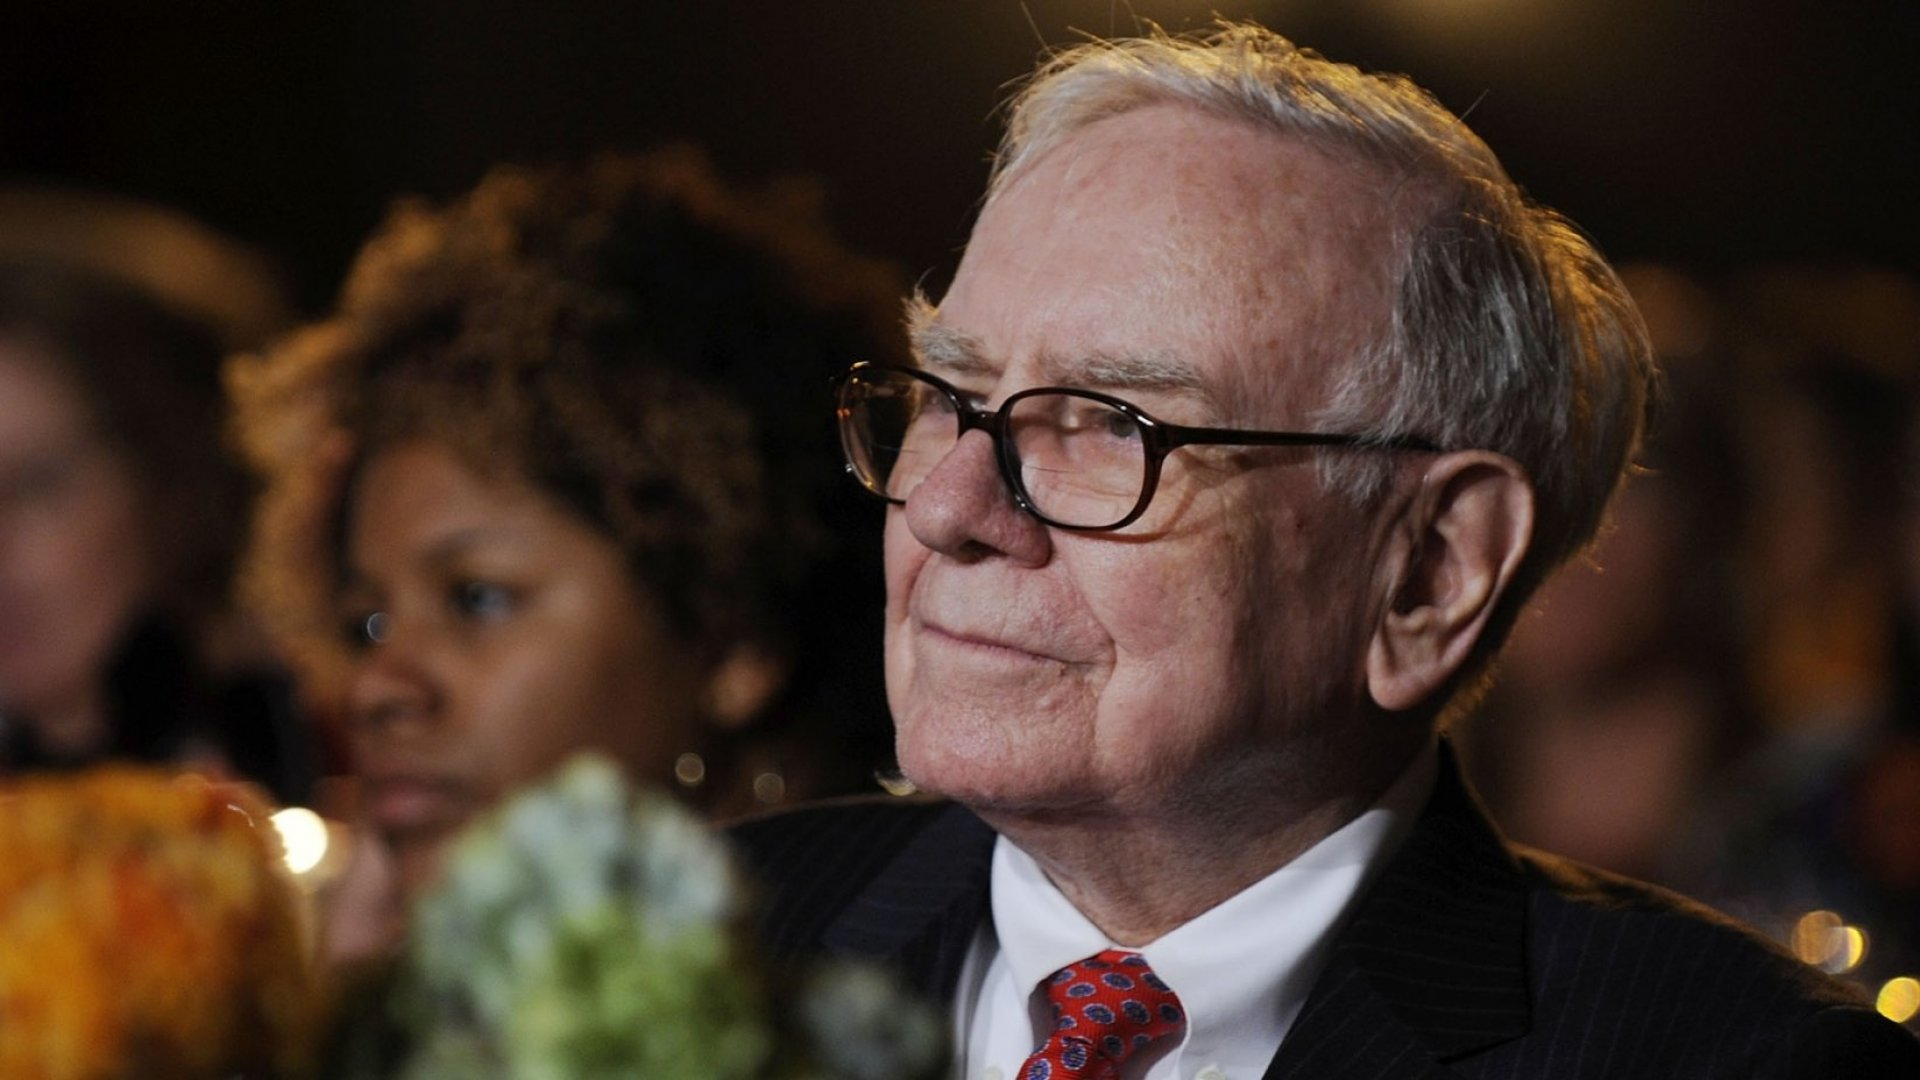 Billionaire Warren Buffett's '2 List' strategy is an easy way to decide what's most important to you.